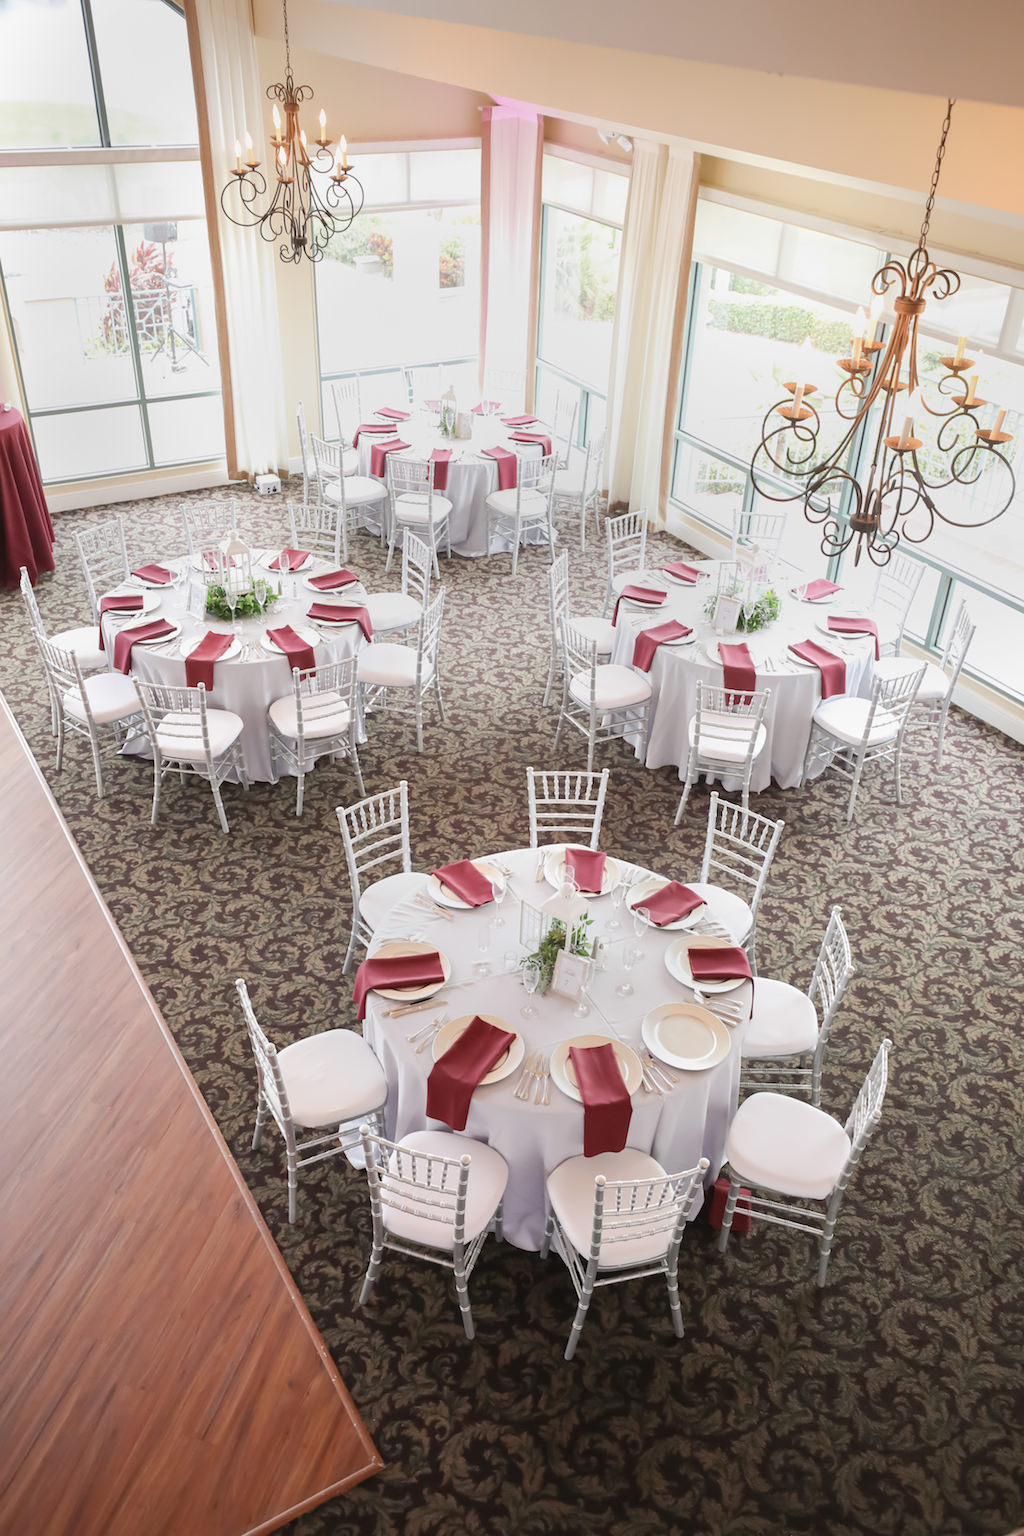 Winter Wedding Decor with Silver Chiavari Chairs, Silver Tablecloths and Maroon Napkins | Elegant Golf Course Ballroom Wedding Reception Venue with Floor to Ceiling Windows at The Bayou Club | Tampa Wedding Photographer Lifelong Photography Studio